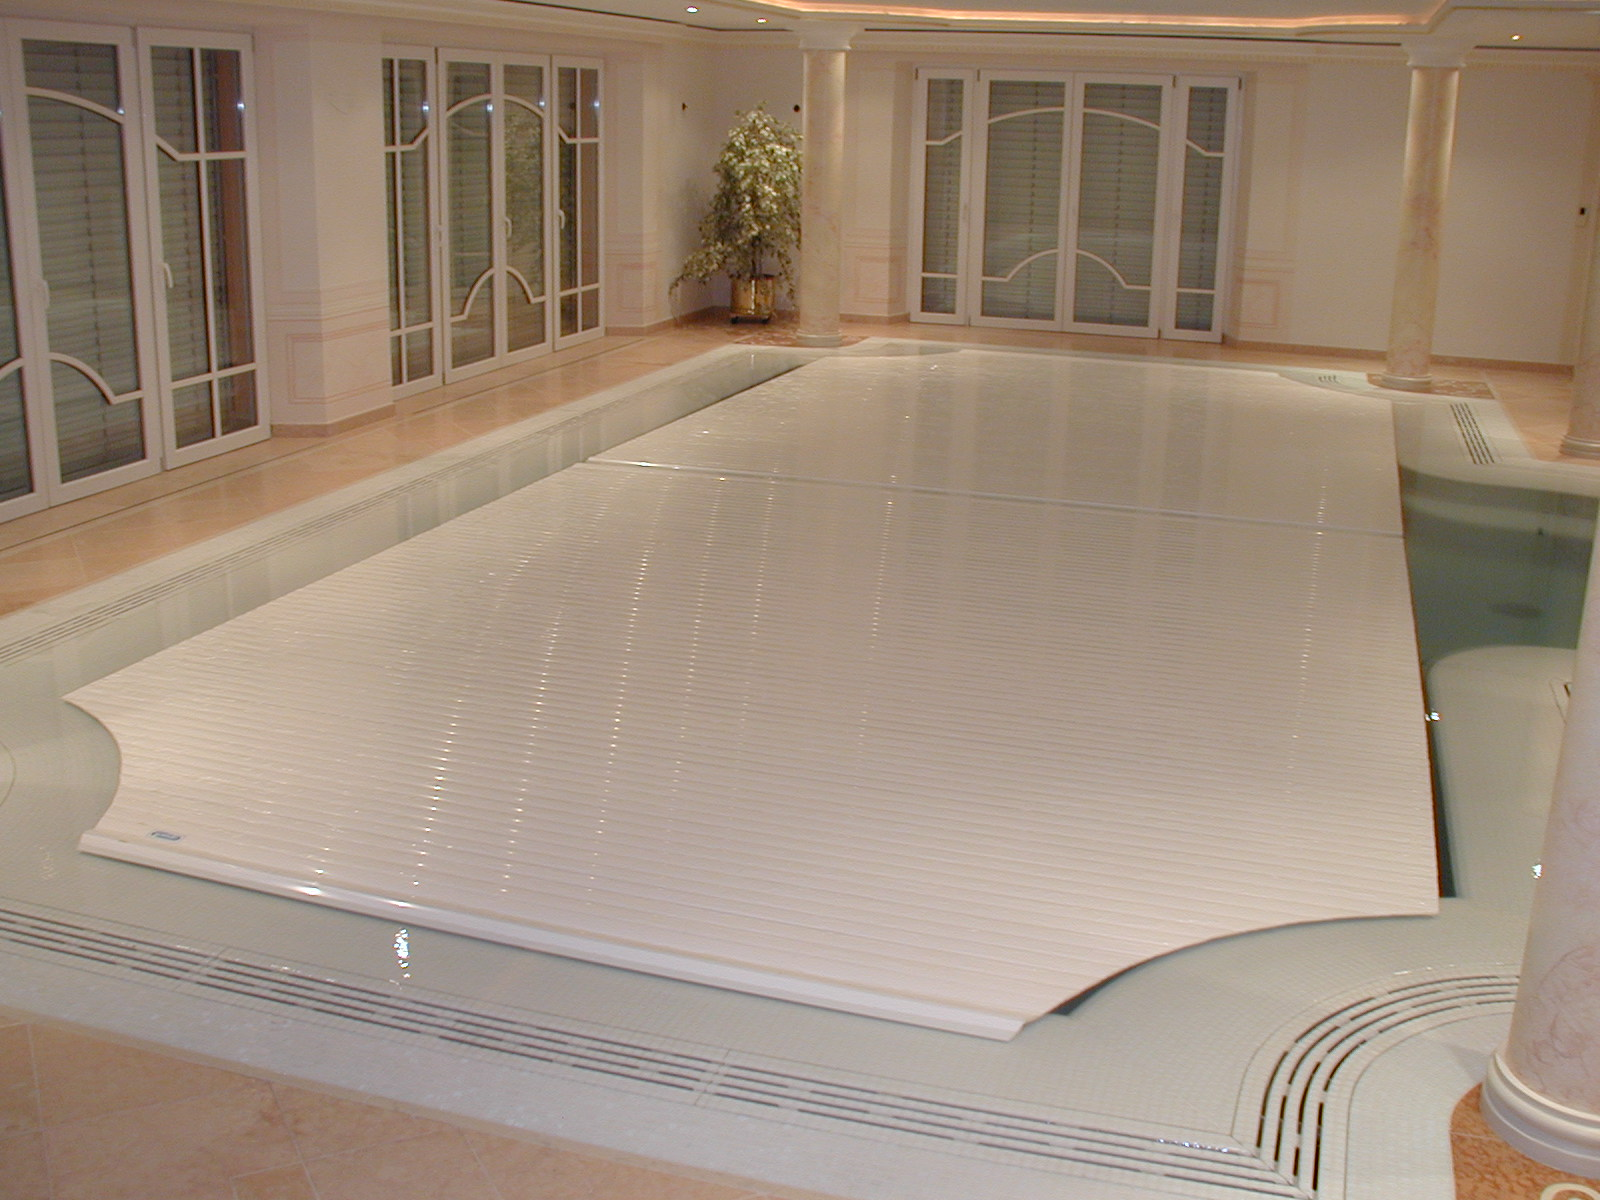 indoor rigid slatted automatic pool cover covertech grando IBS8 3